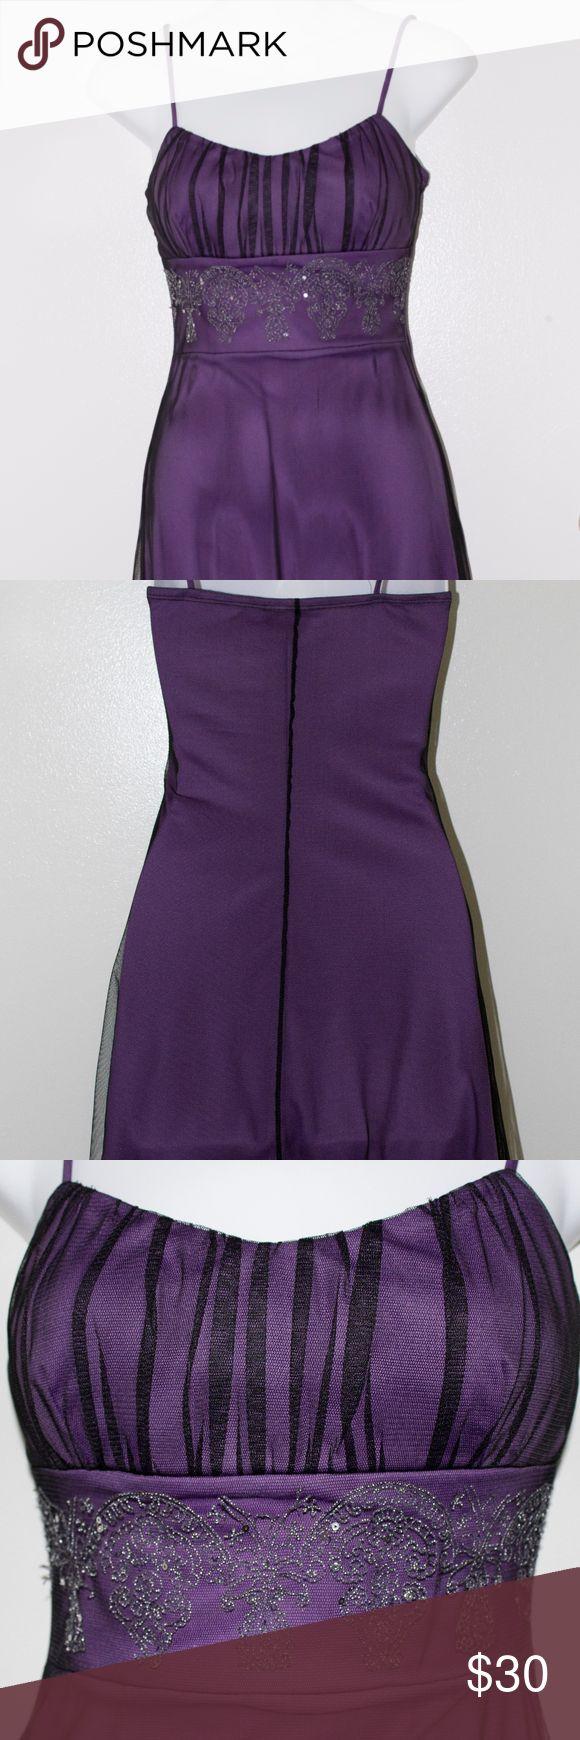 Taboo purple mini dress size small This is a beautiful purple dress with a beaded lace pattern on top of tool. It has spaghetti straps and it has horizontal black lines at the top. Taboo Dresses Mini